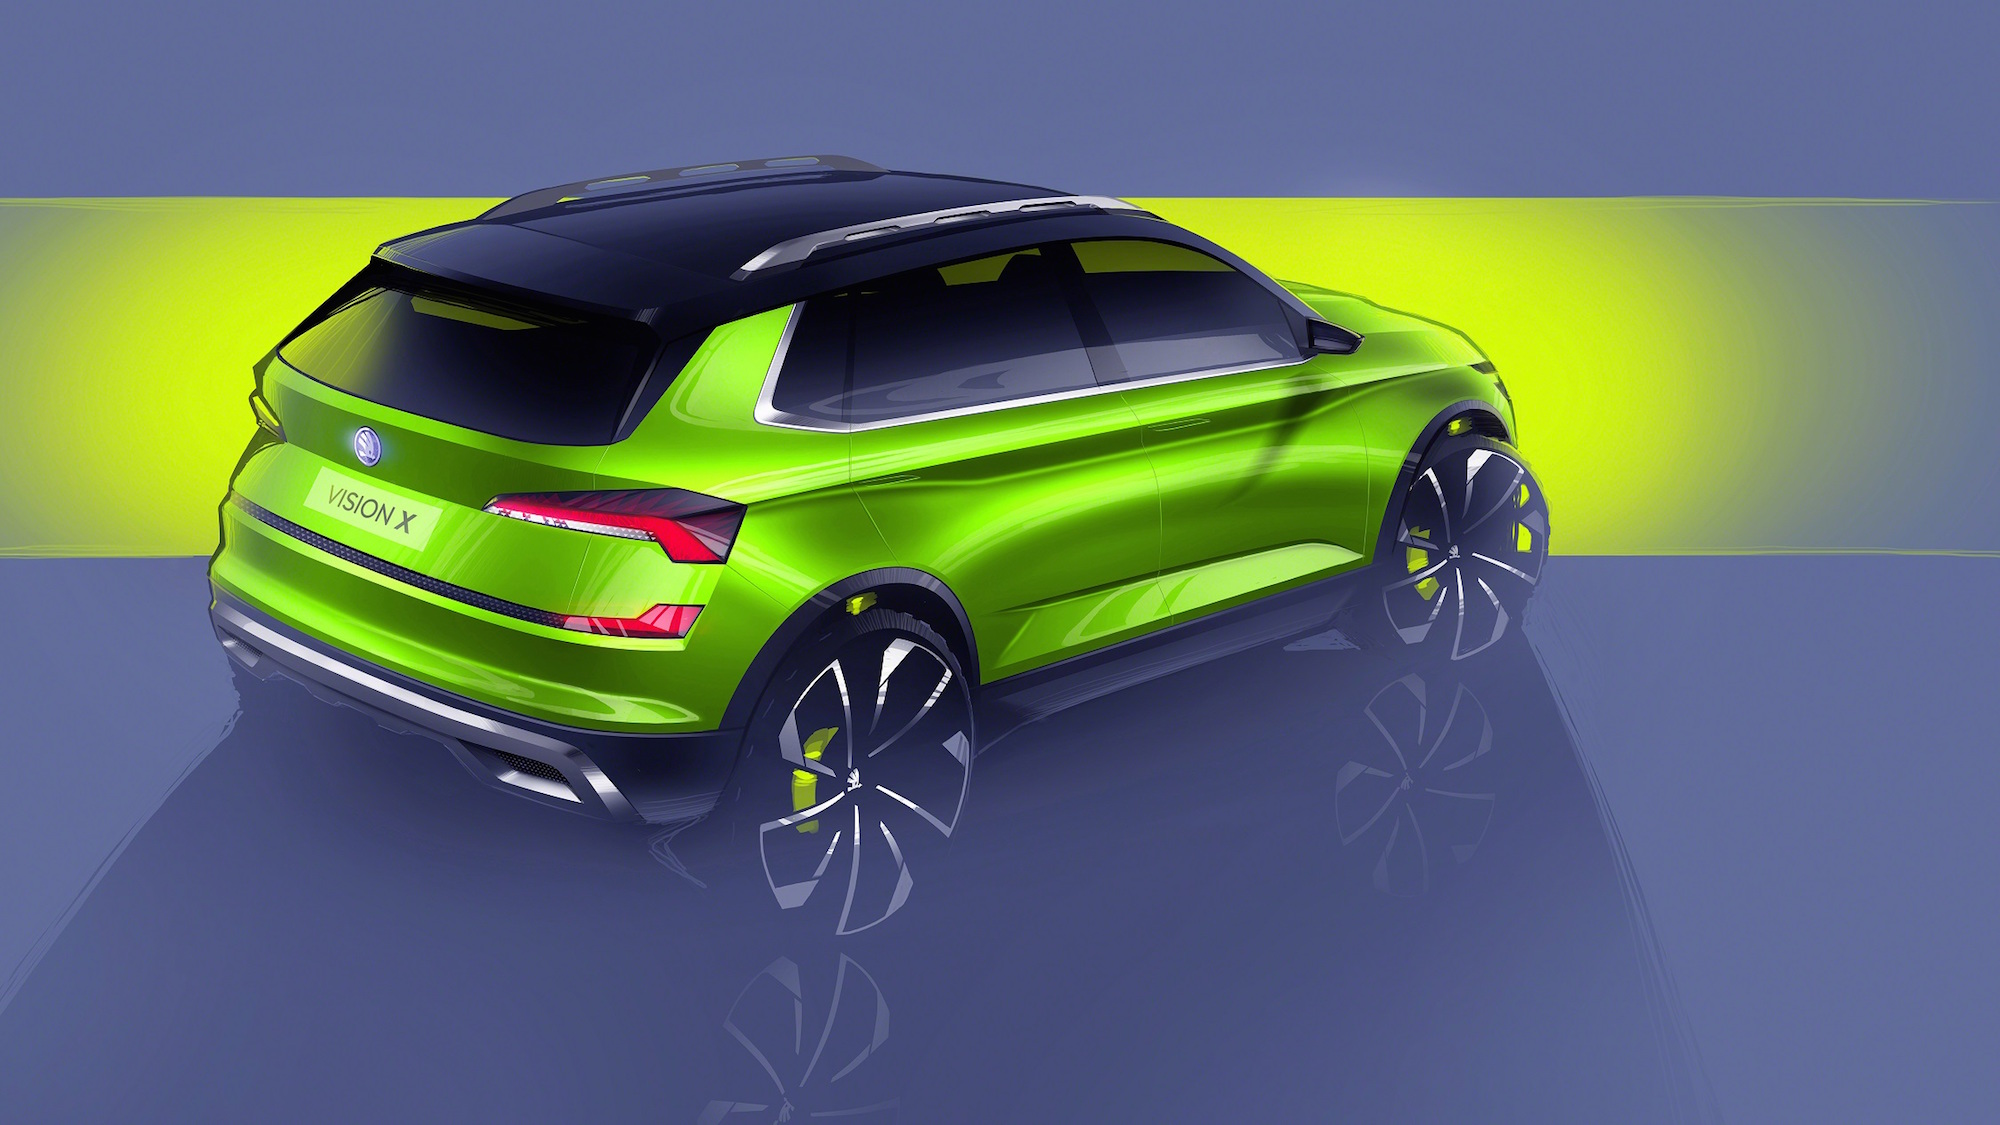 The Vision X shows Skoda's new weeny SUV